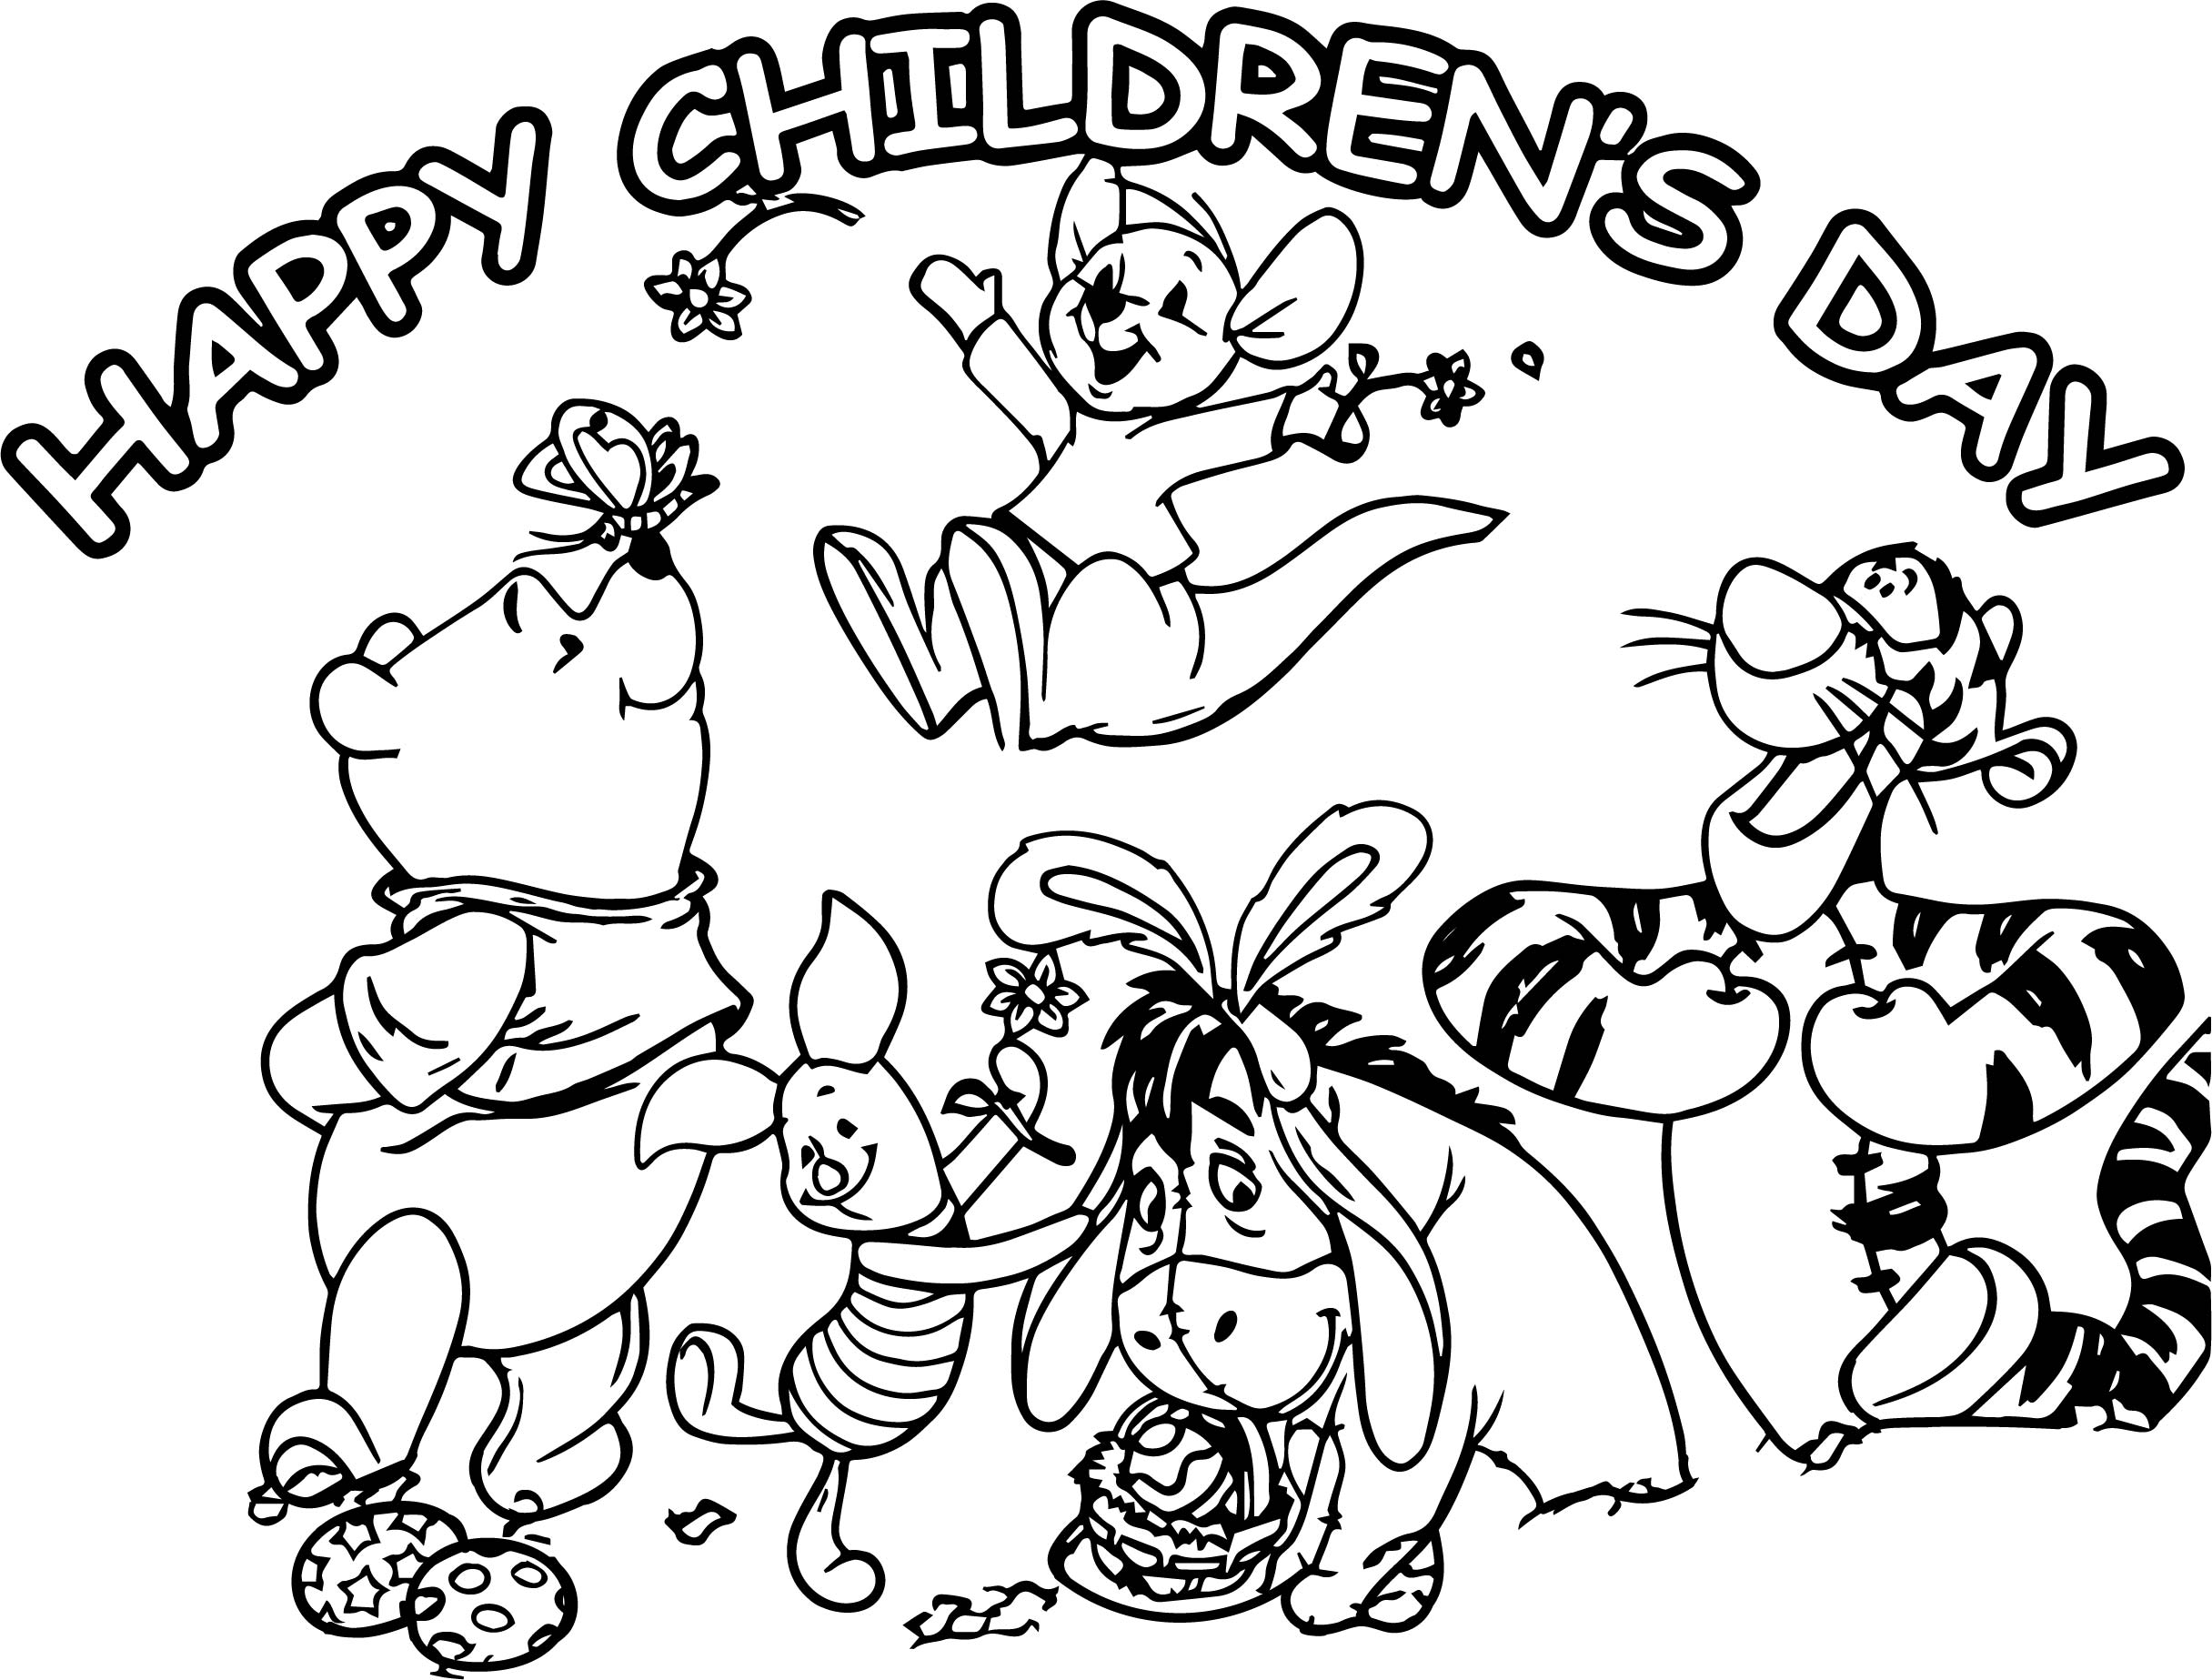 Happy Childrens Day Animal Kingdom Graphic For Share On ...